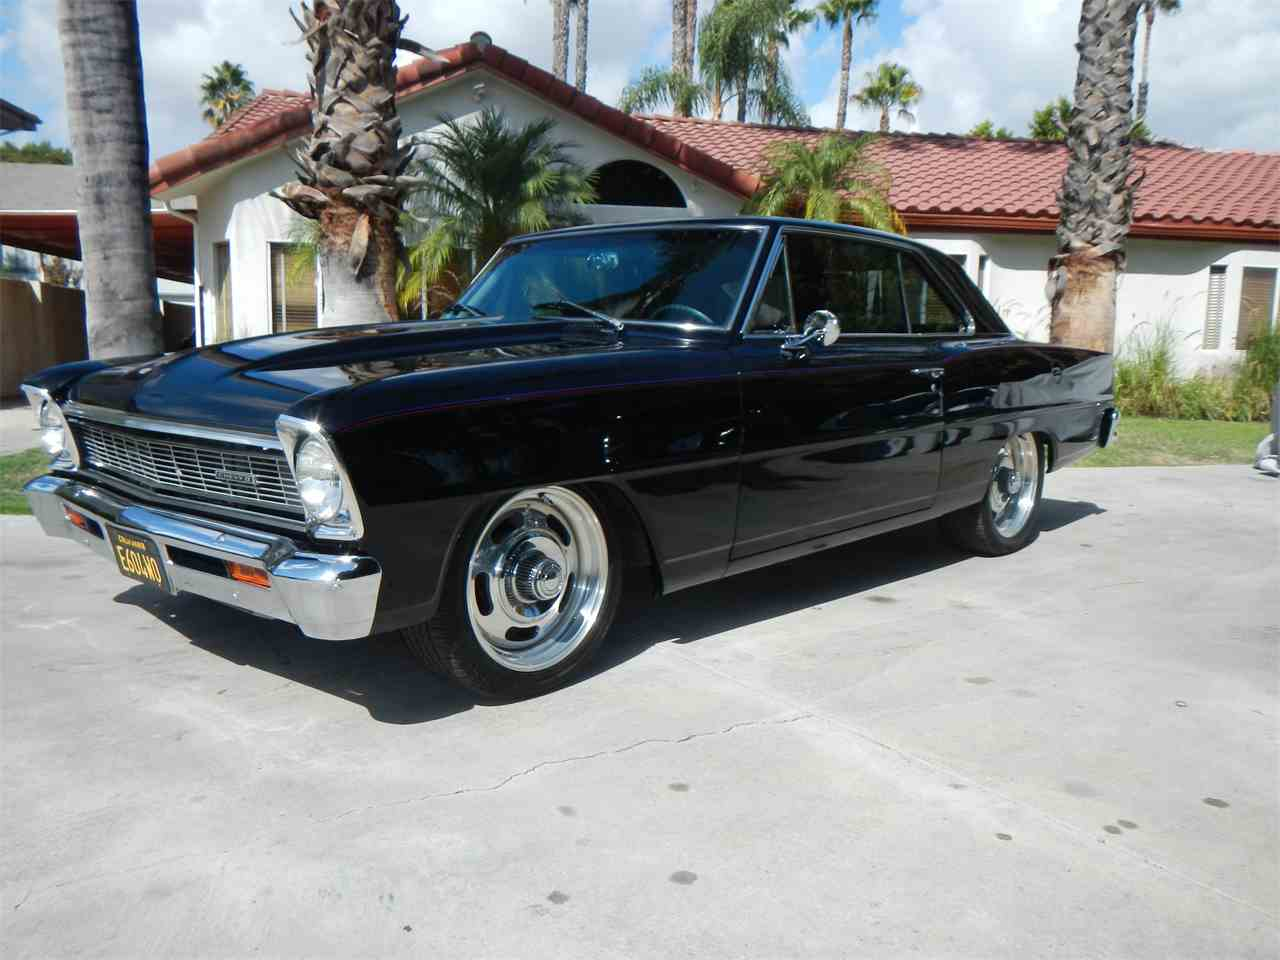 cadillac woodland hills with 1966 Chevrolet Nova Ii Ss For Sale In Woodland Hills California 91367 on Ford Explorer 2019 Interior further La Vip Bus Executive Bespoke Sprinter Rentals as well Cadillac Srx 2010 Adrian likewise Garage Doors Brands moreover 378600 1953 Studebaker Ch ion Pro Touring Automatic 4 Speed Rwd V8 60l Gasoline.